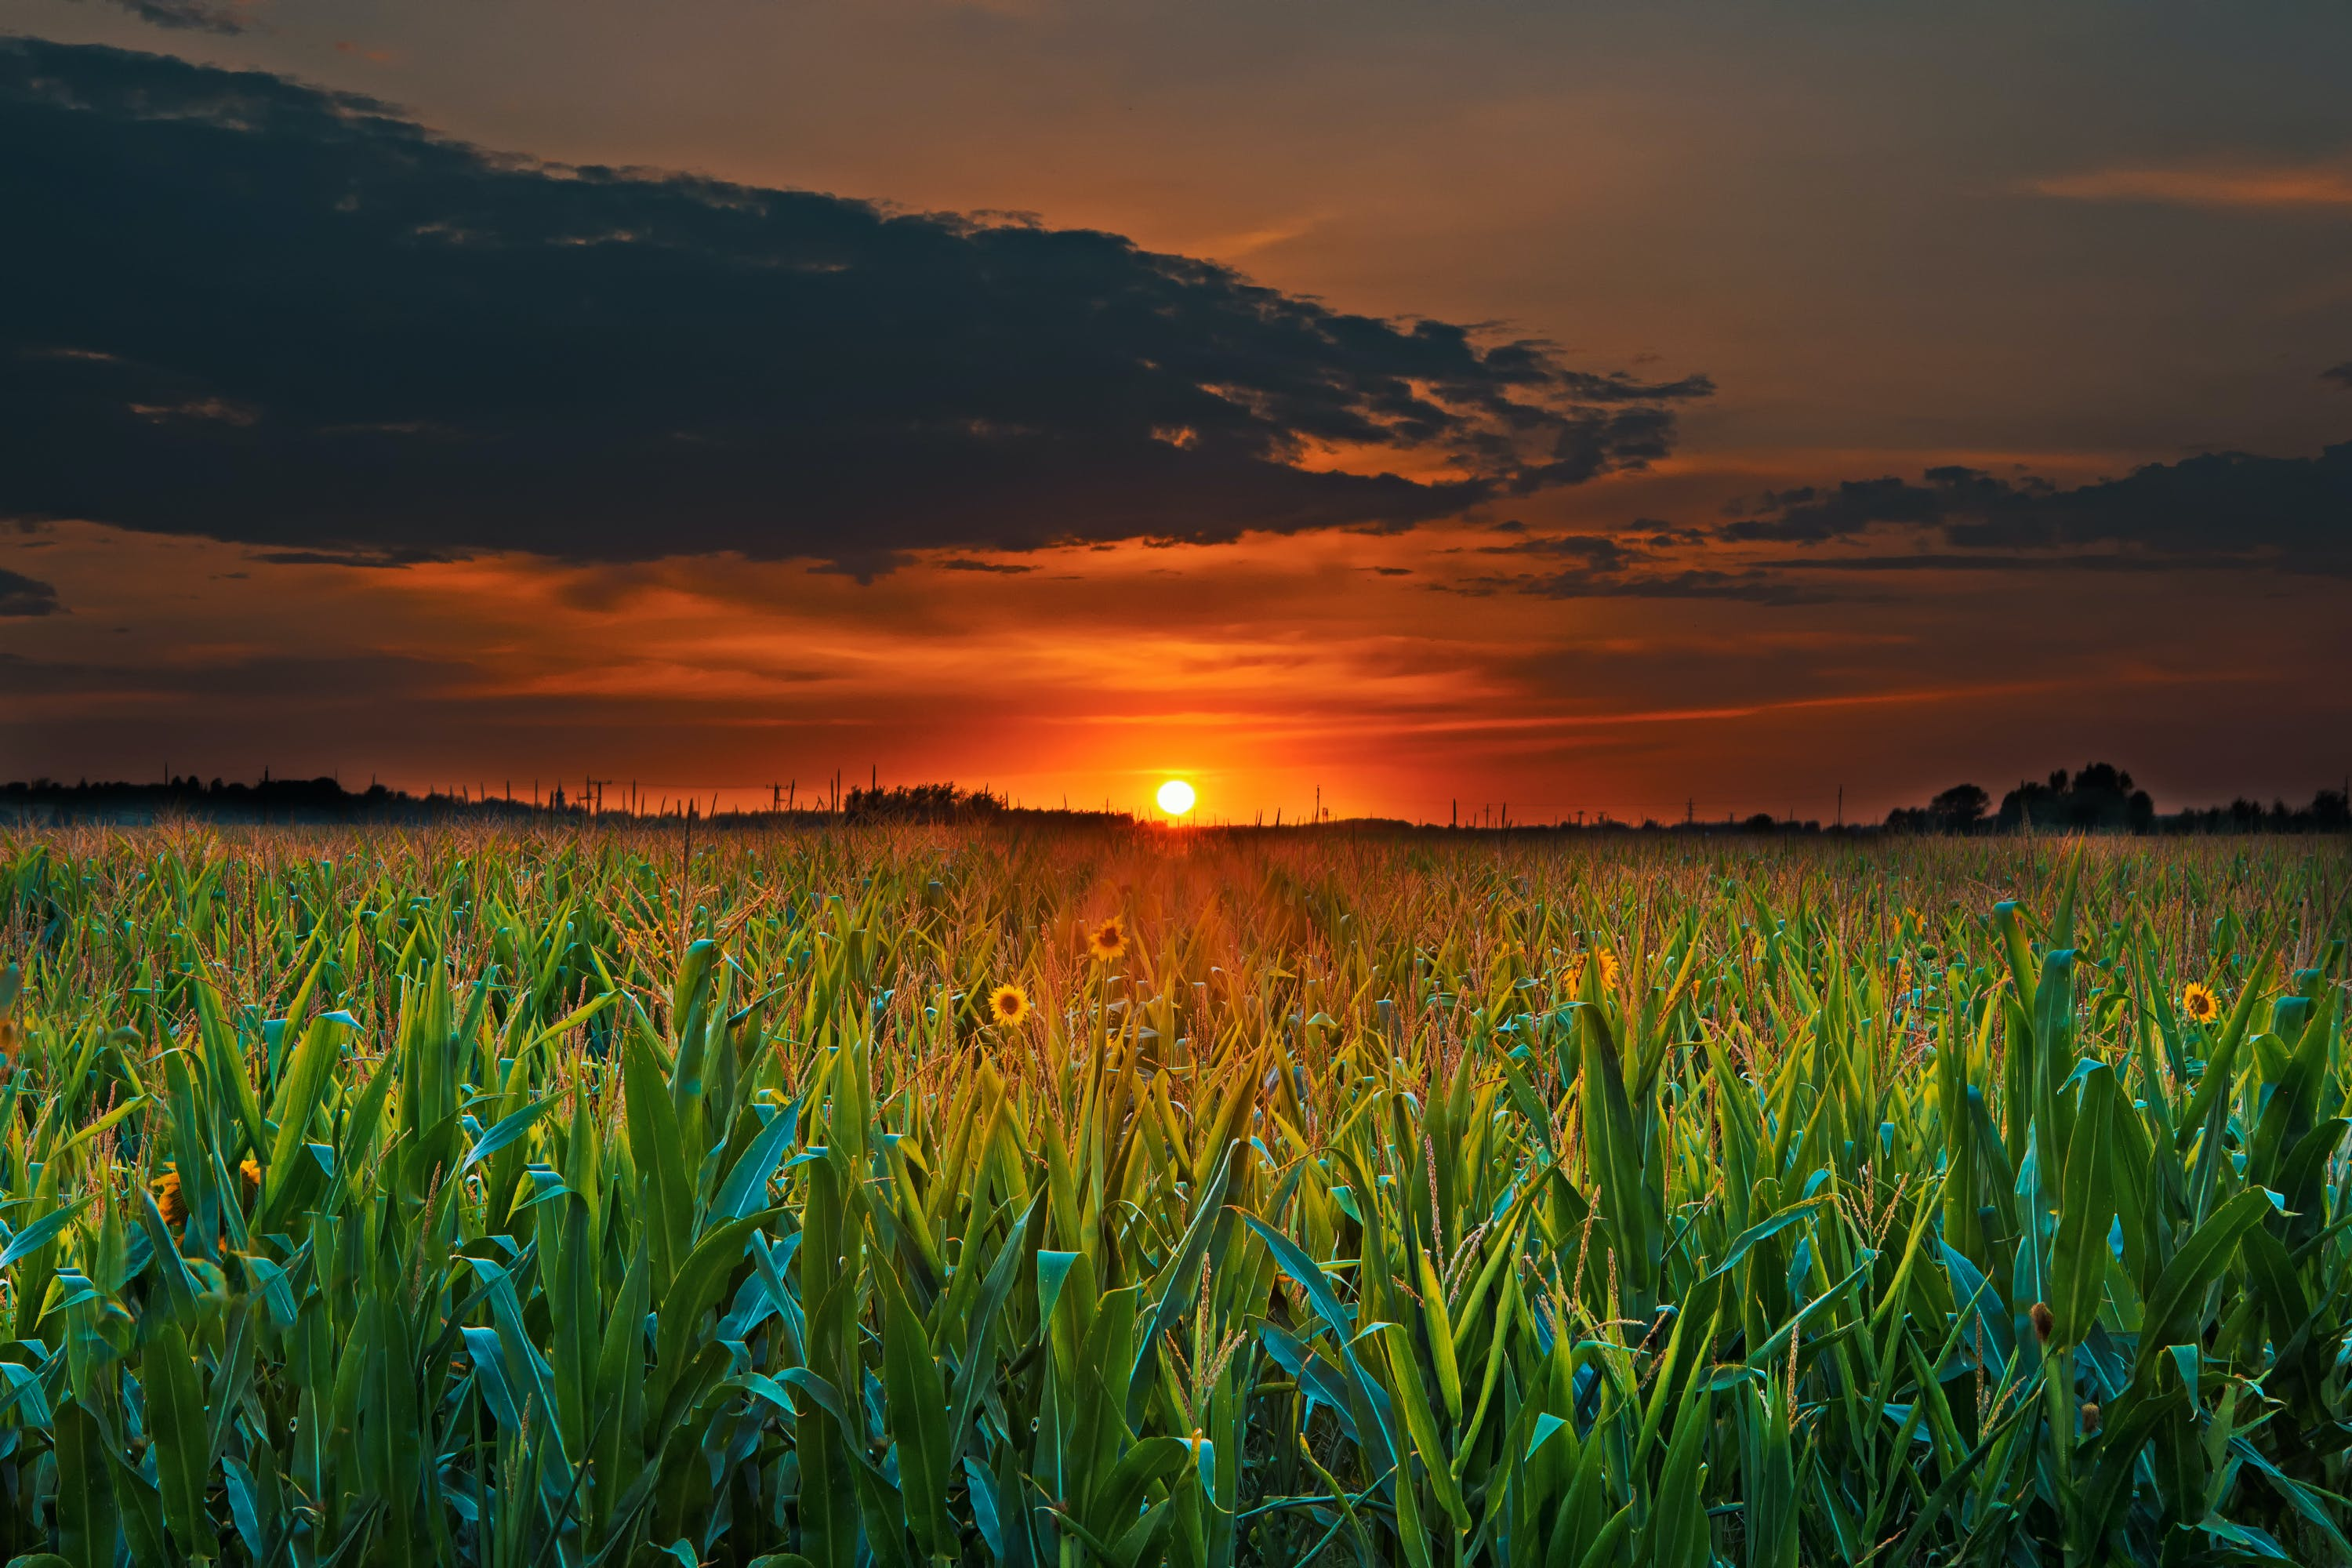 Crop Field and Sunset